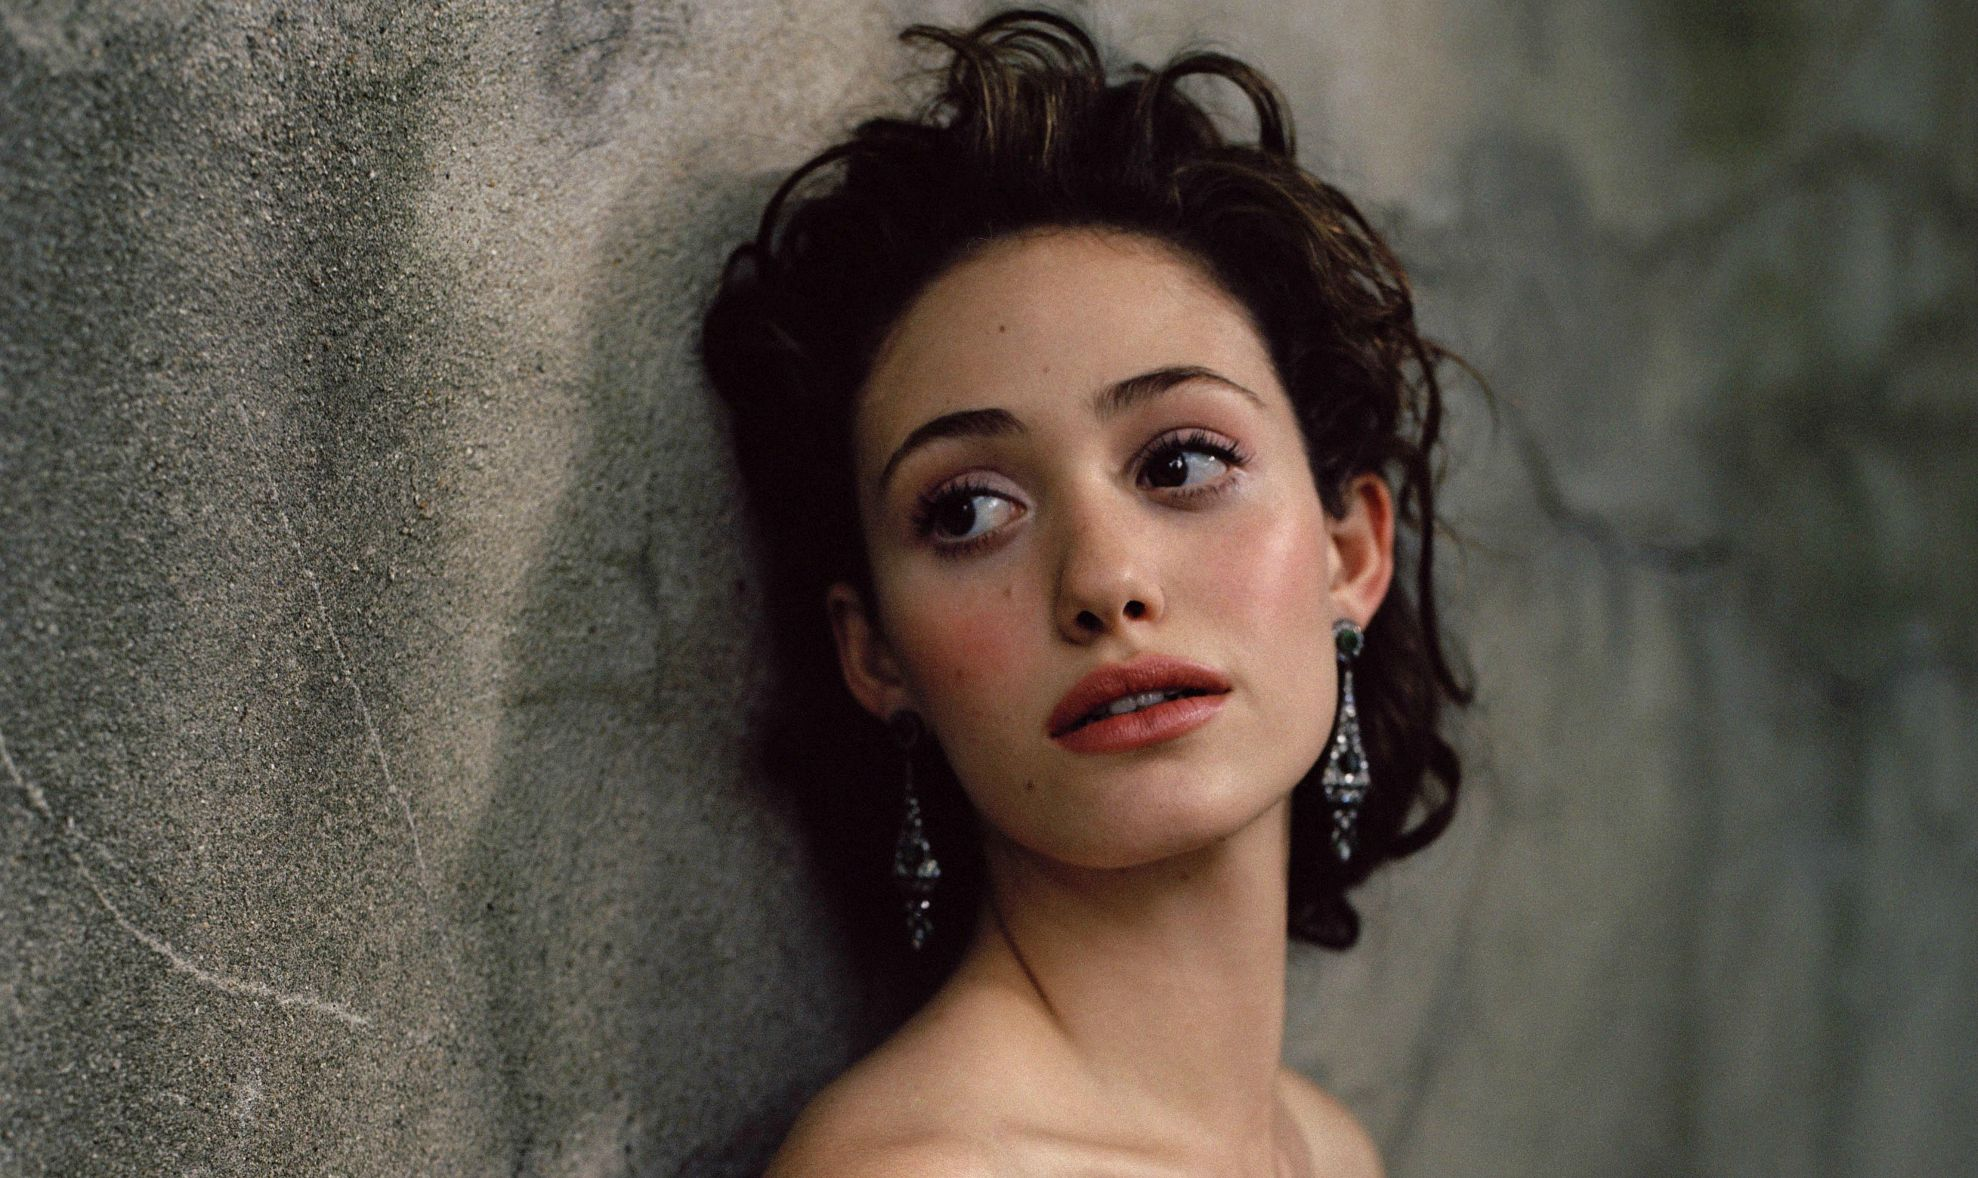 Emmy rossum hd wallpapers movie hd wallpapers emmy rossum hd wallpapers voltagebd Gallery